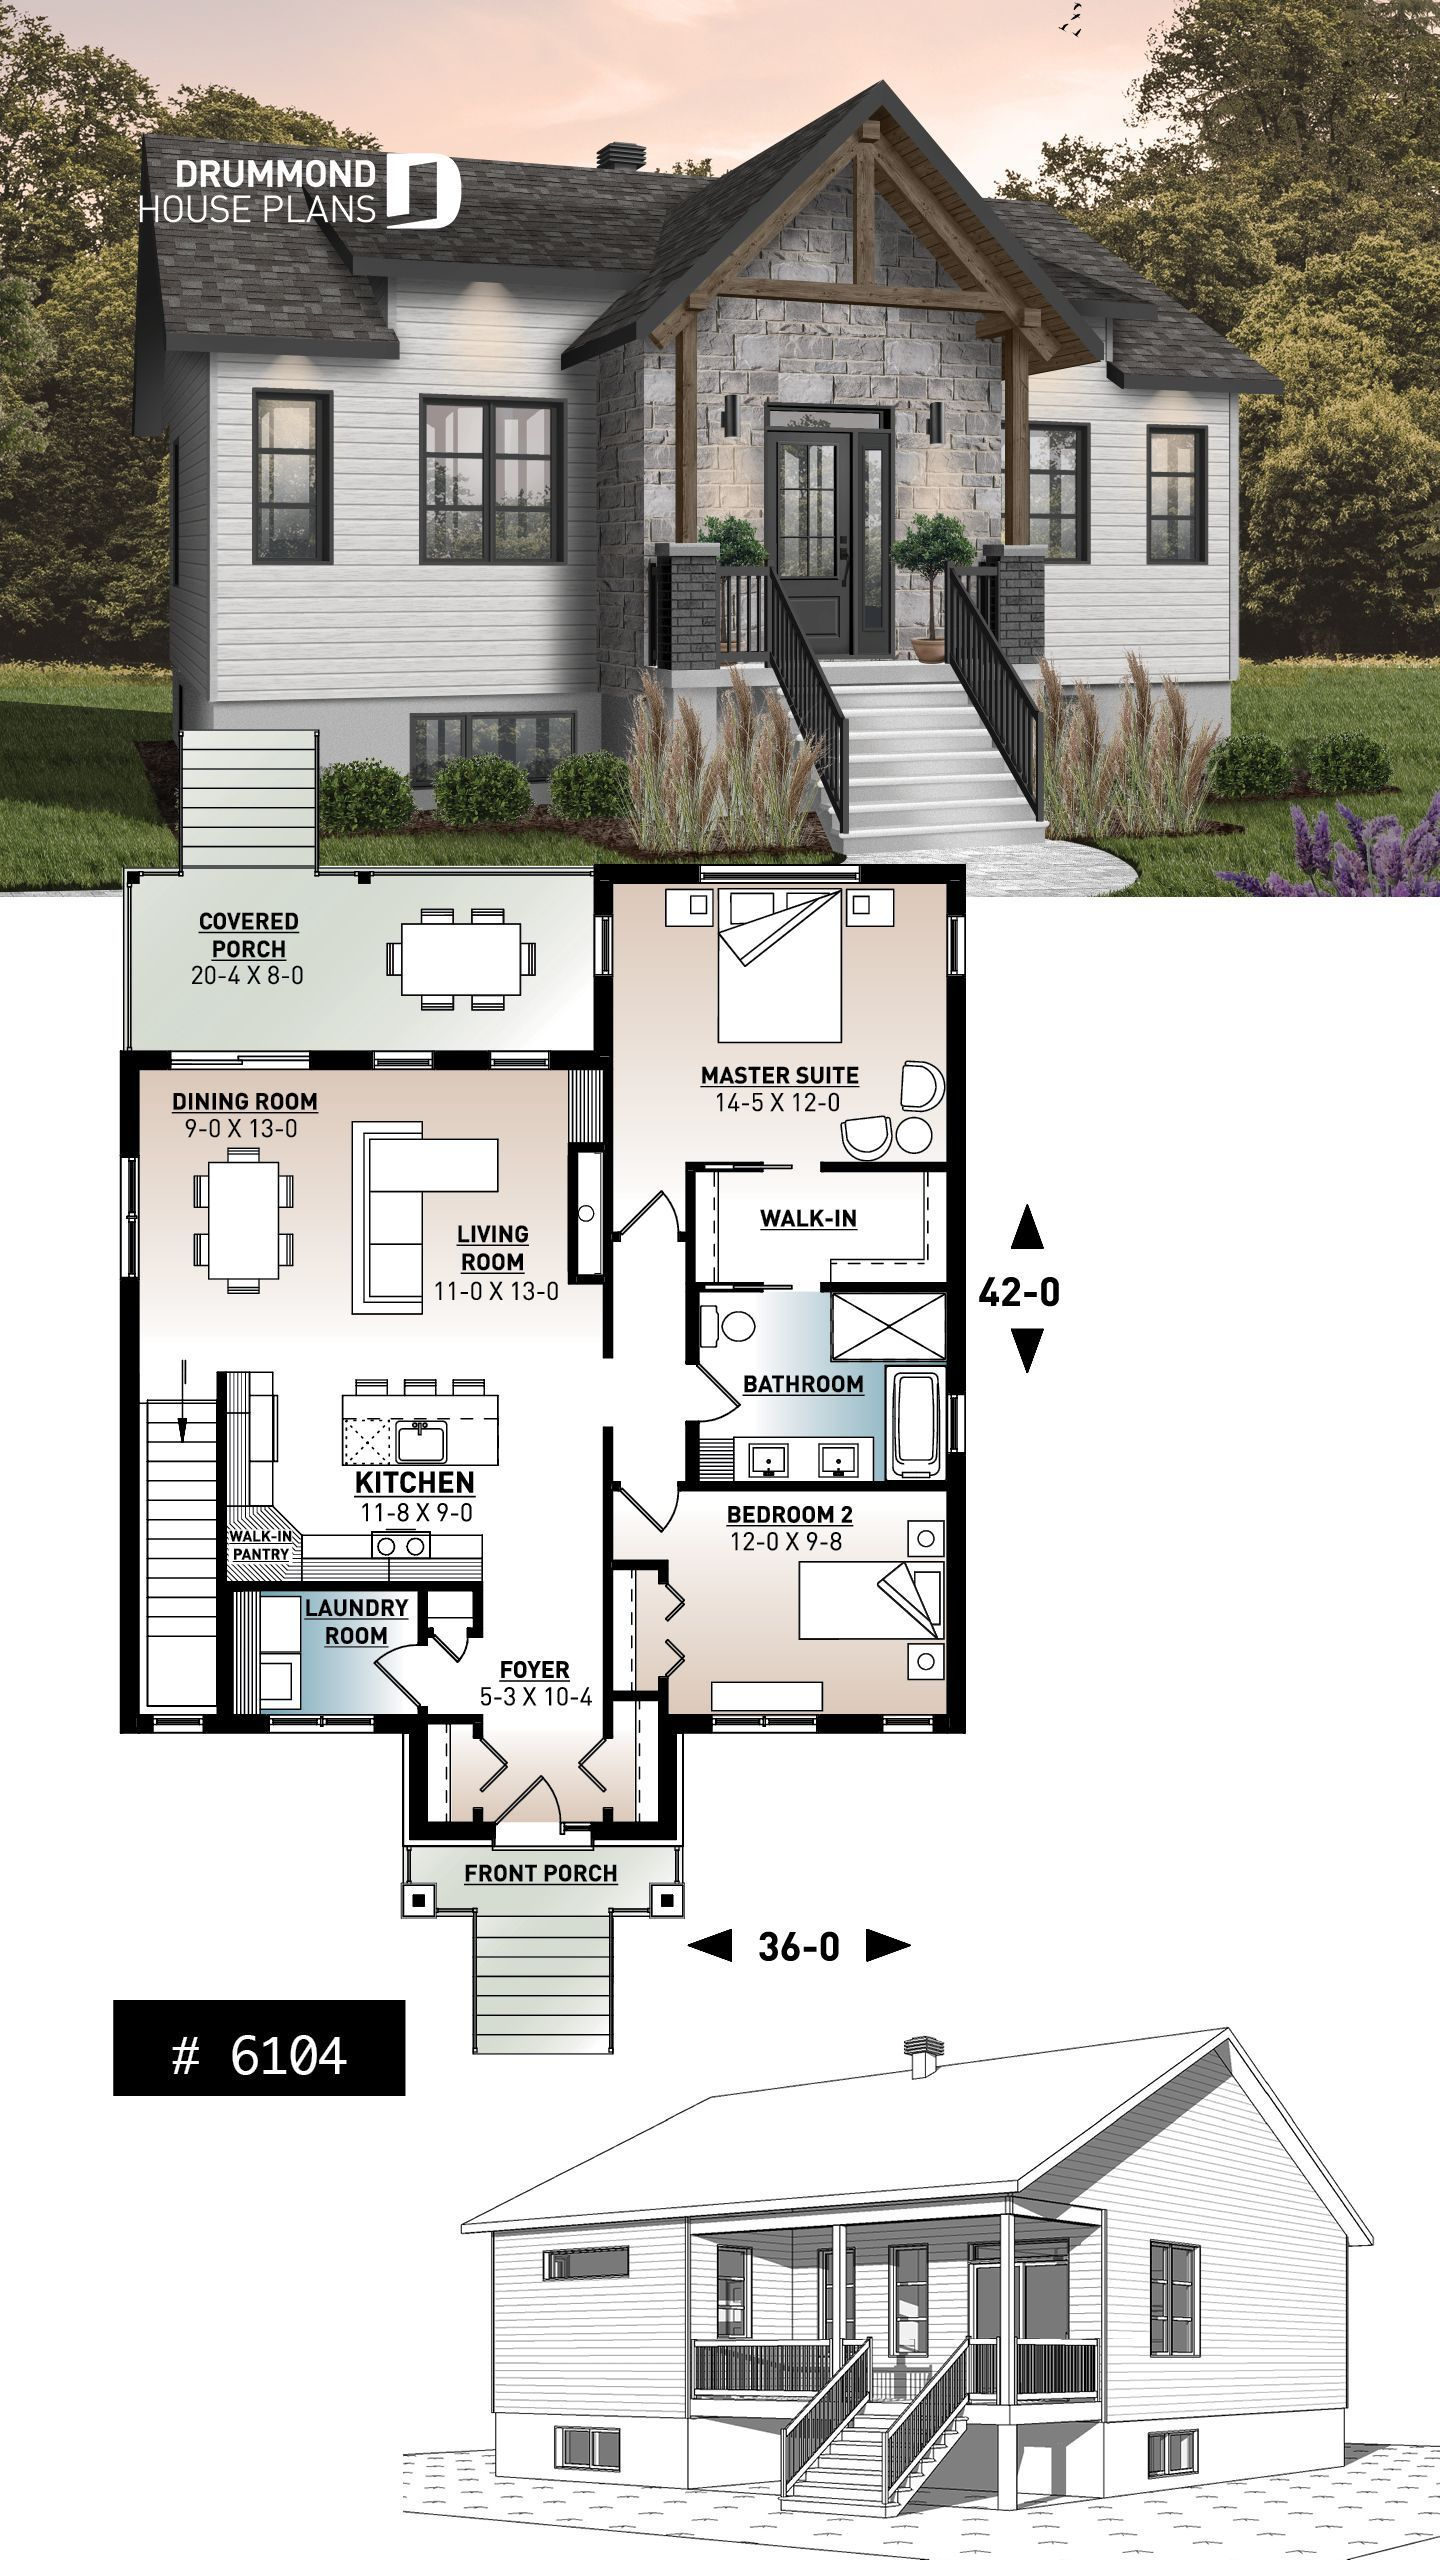 Small Modern Farmhouse Modern First Home Buyer Perfect Plan 2 Bedrooms Large Family Bathroom Fireplace In 2020 Sims House Plans House Plans House Blueprints